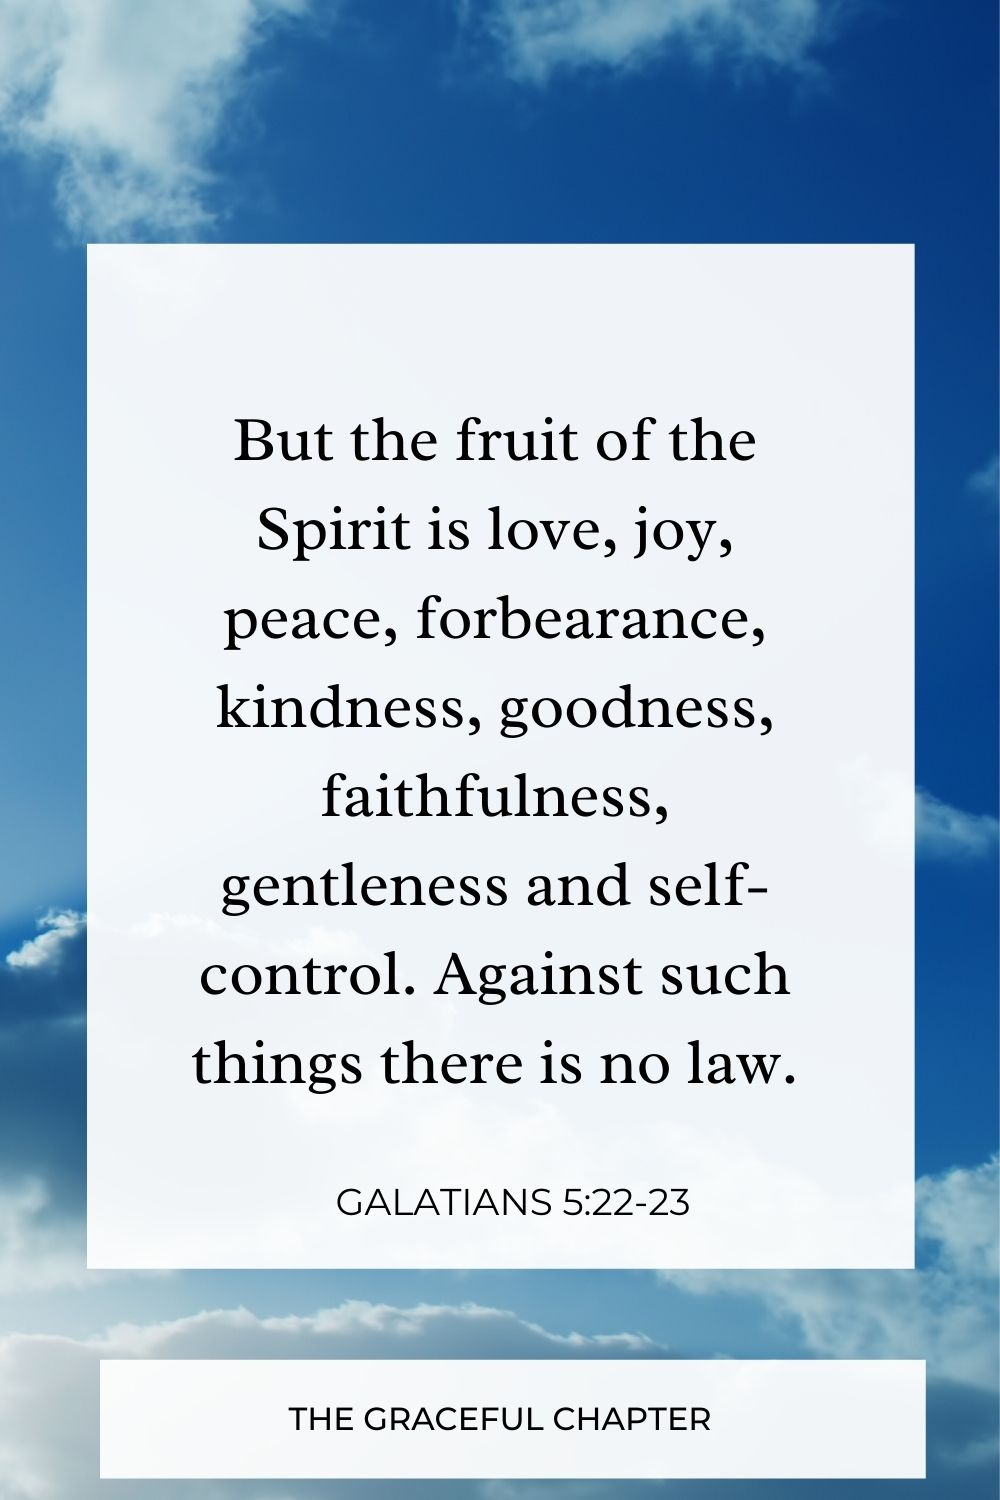 But the fruit of the Spirit is love, joy, peace, forbearance, kindness, goodness, faithfulness, gentleness and self-control. Against such things there is no law. Galatians 5:22-23